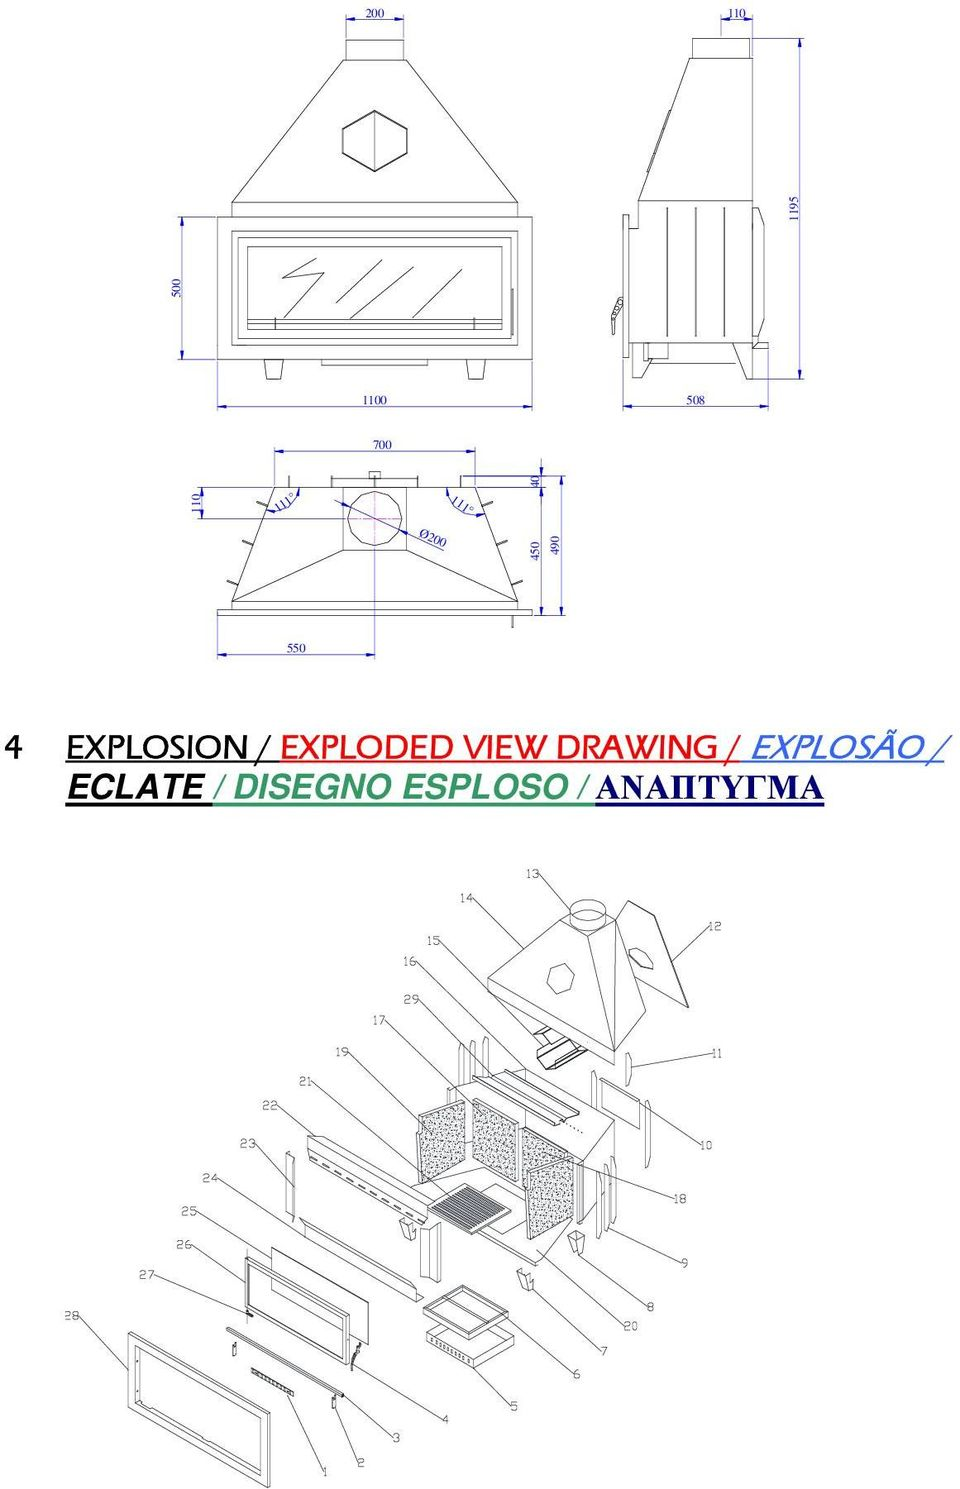 EXPLOSION / EXPLODED VIEW DRAWING /